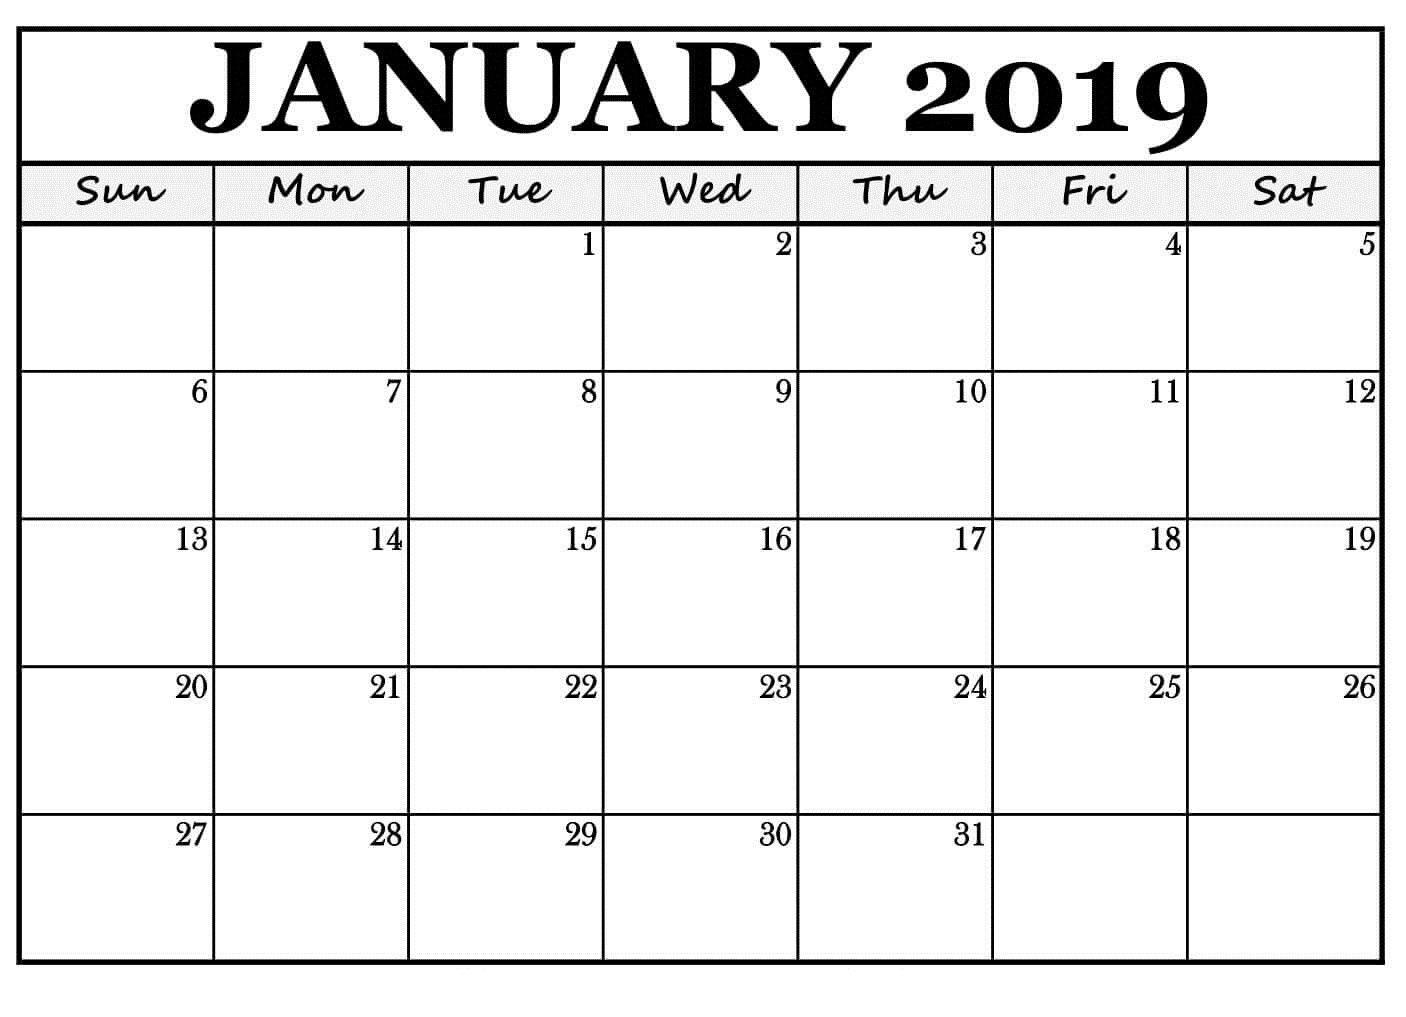 January 2019 Calendar Reminders Free Template